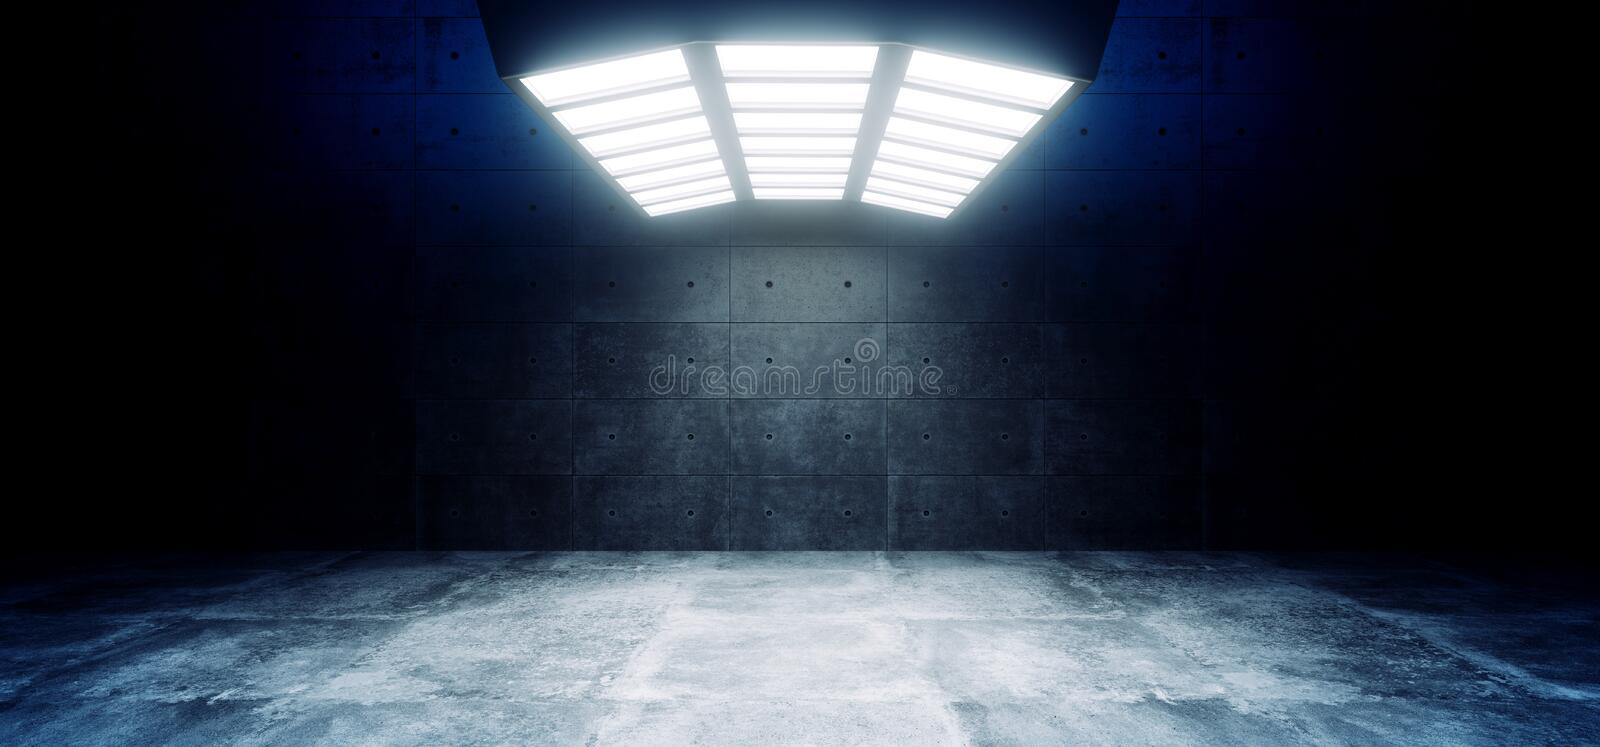 Futuristic Sci Fi Modern Empty Big Hall Dark Grunge Reflective Concrete Curved Big White Blue Lights Studio Stage Empty Showroom vector illustration